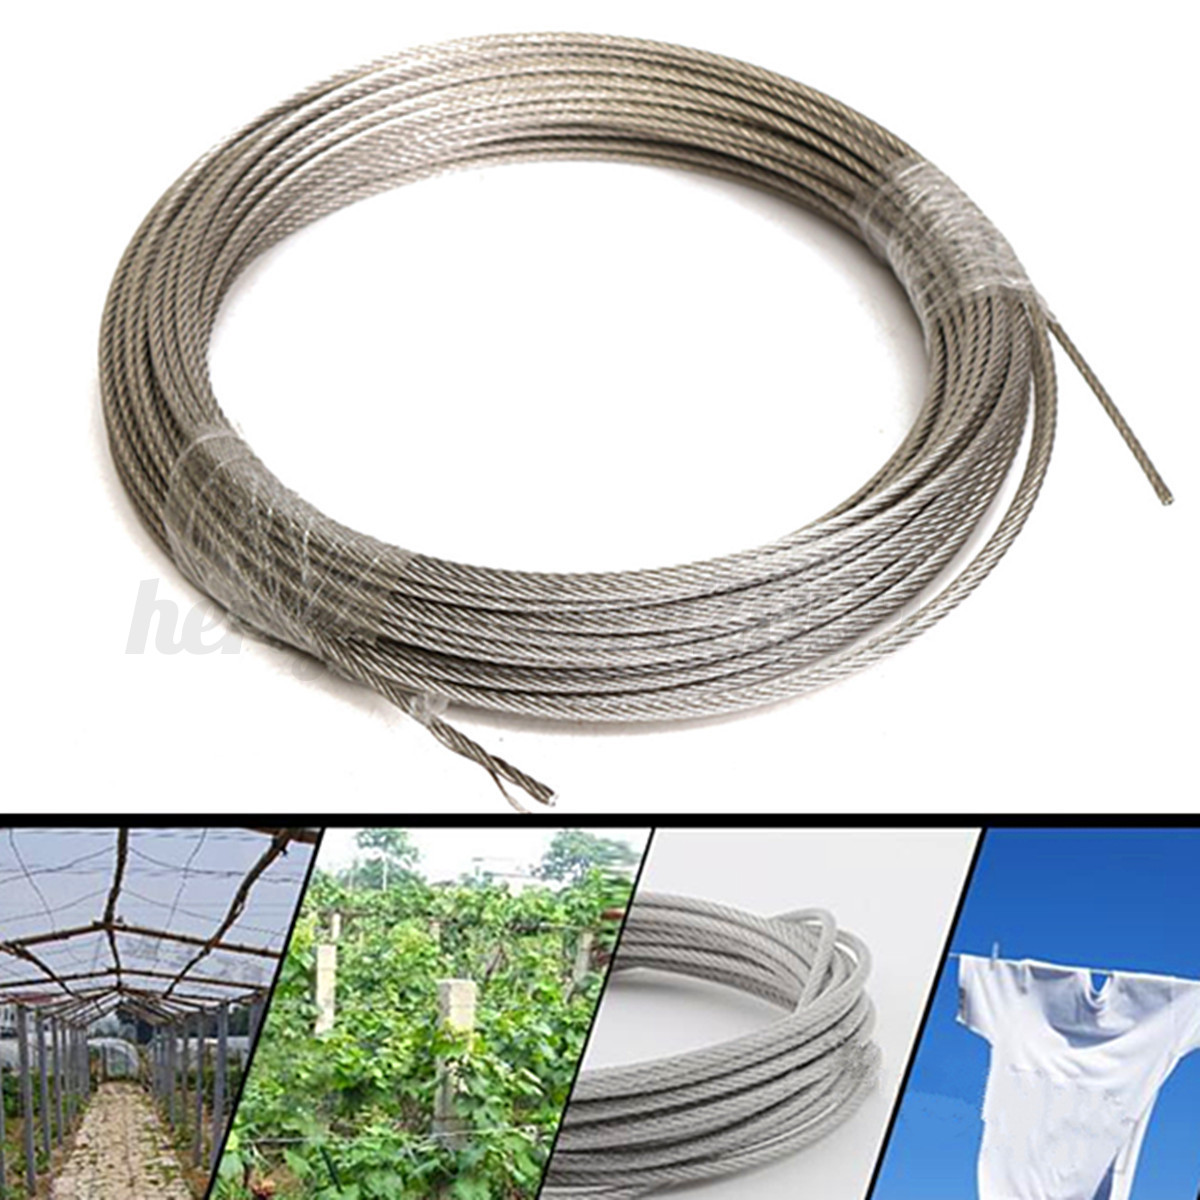 Ss Wire Rope : M grade stainless steel metal wire rope cable